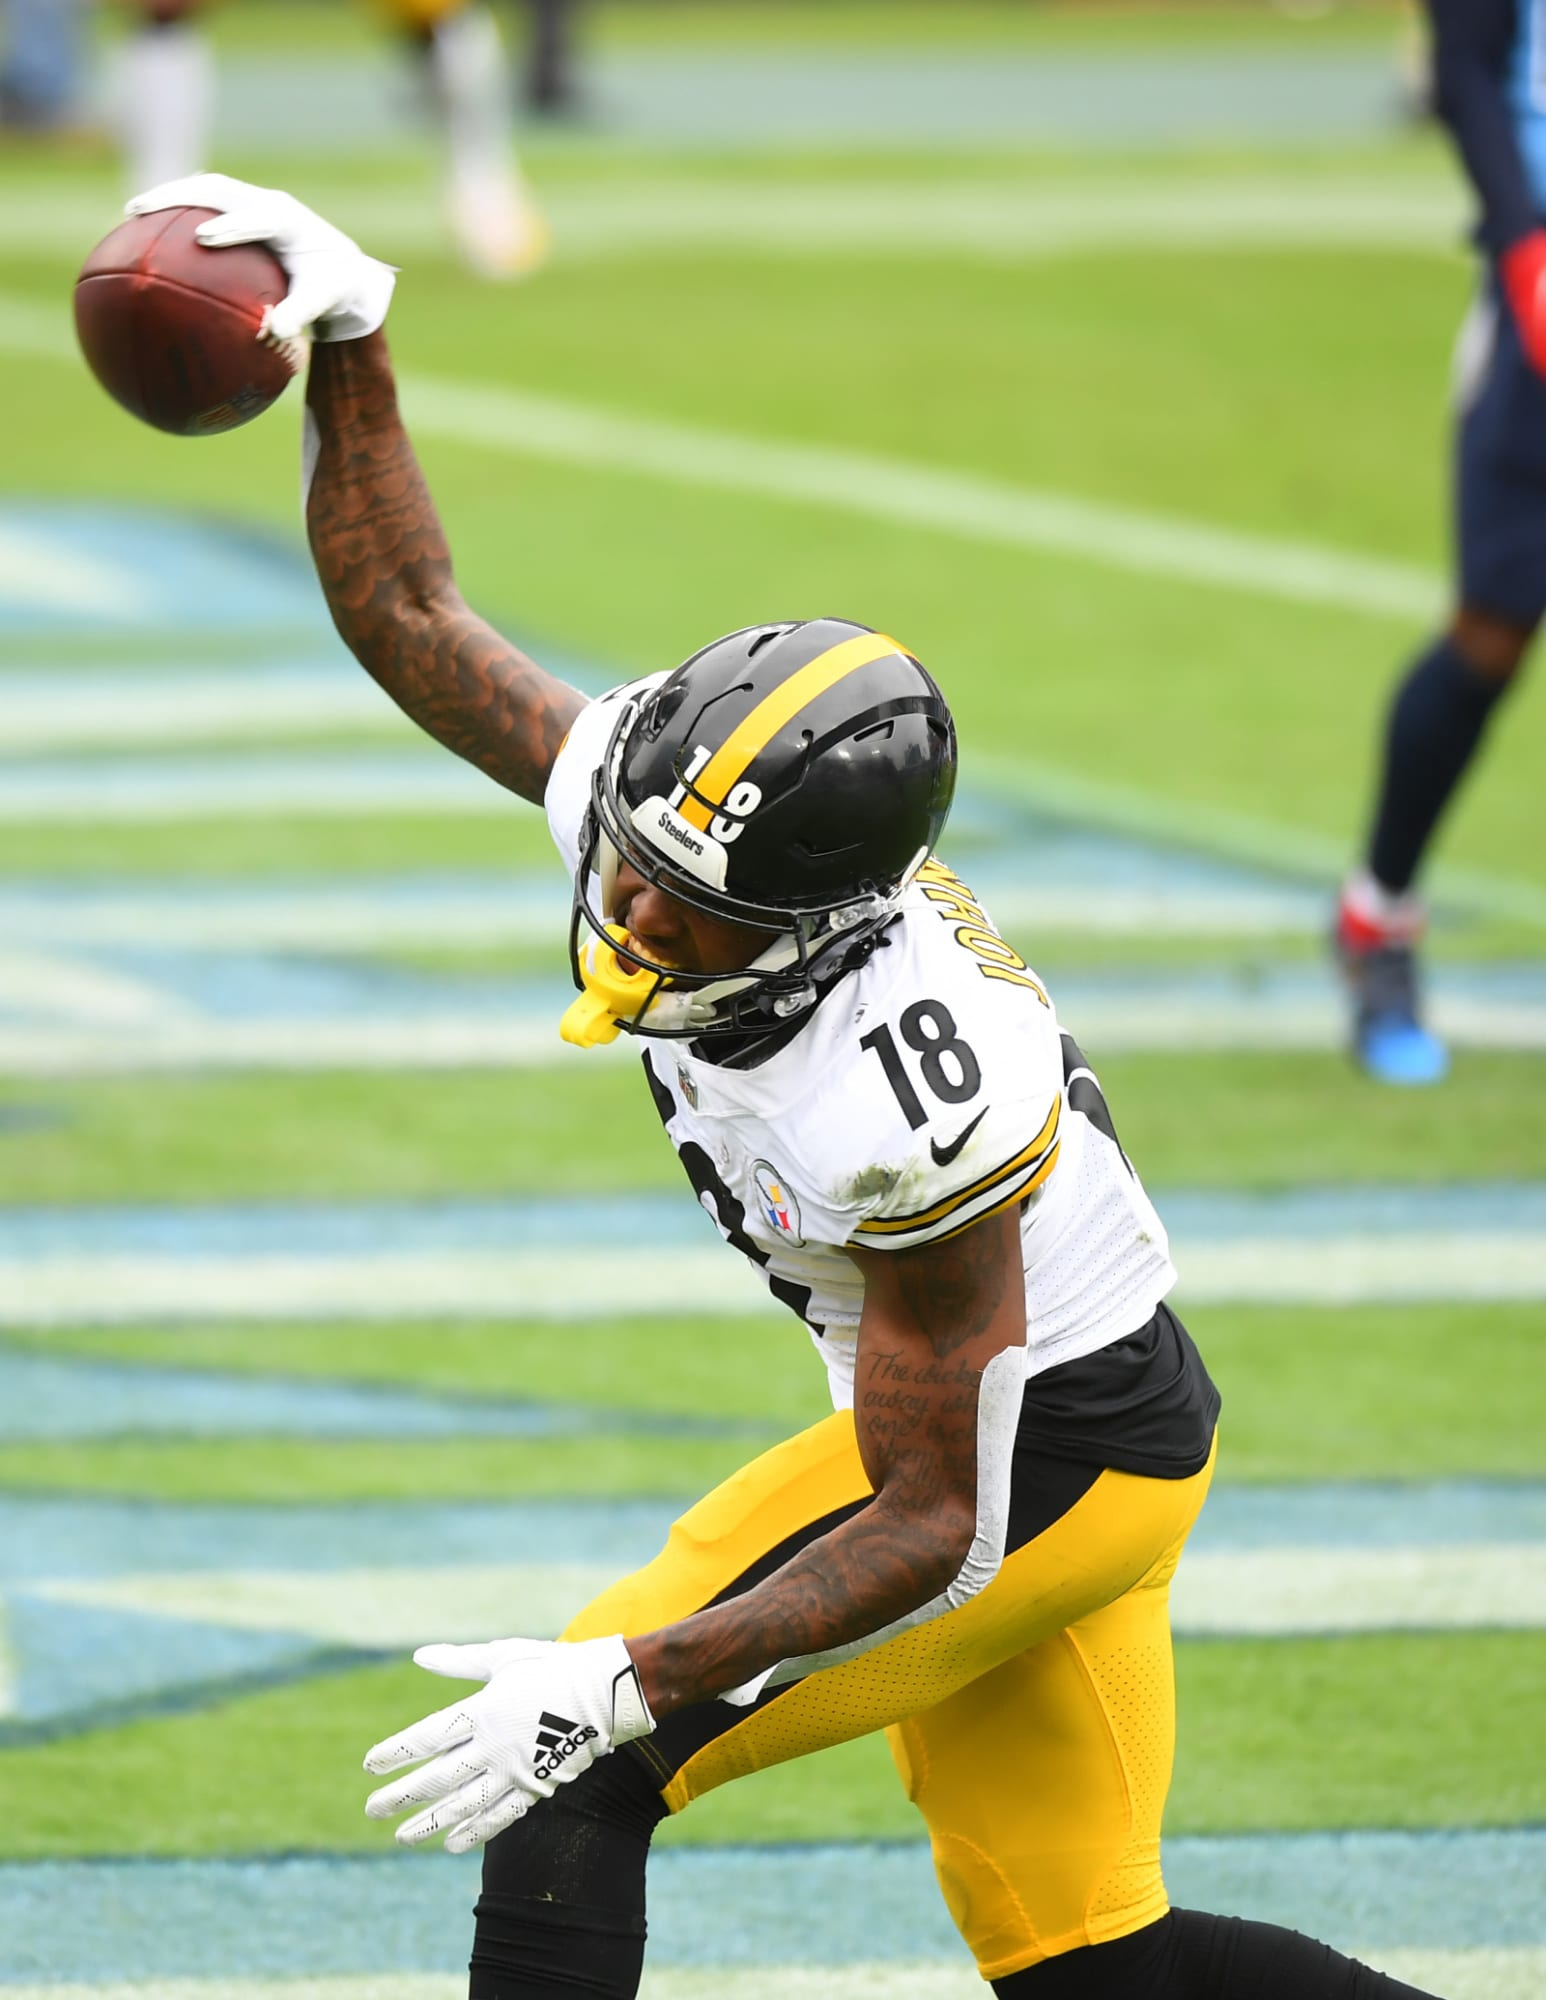 Steelers Improve to 6-0 with many Odd Stats Against Titans